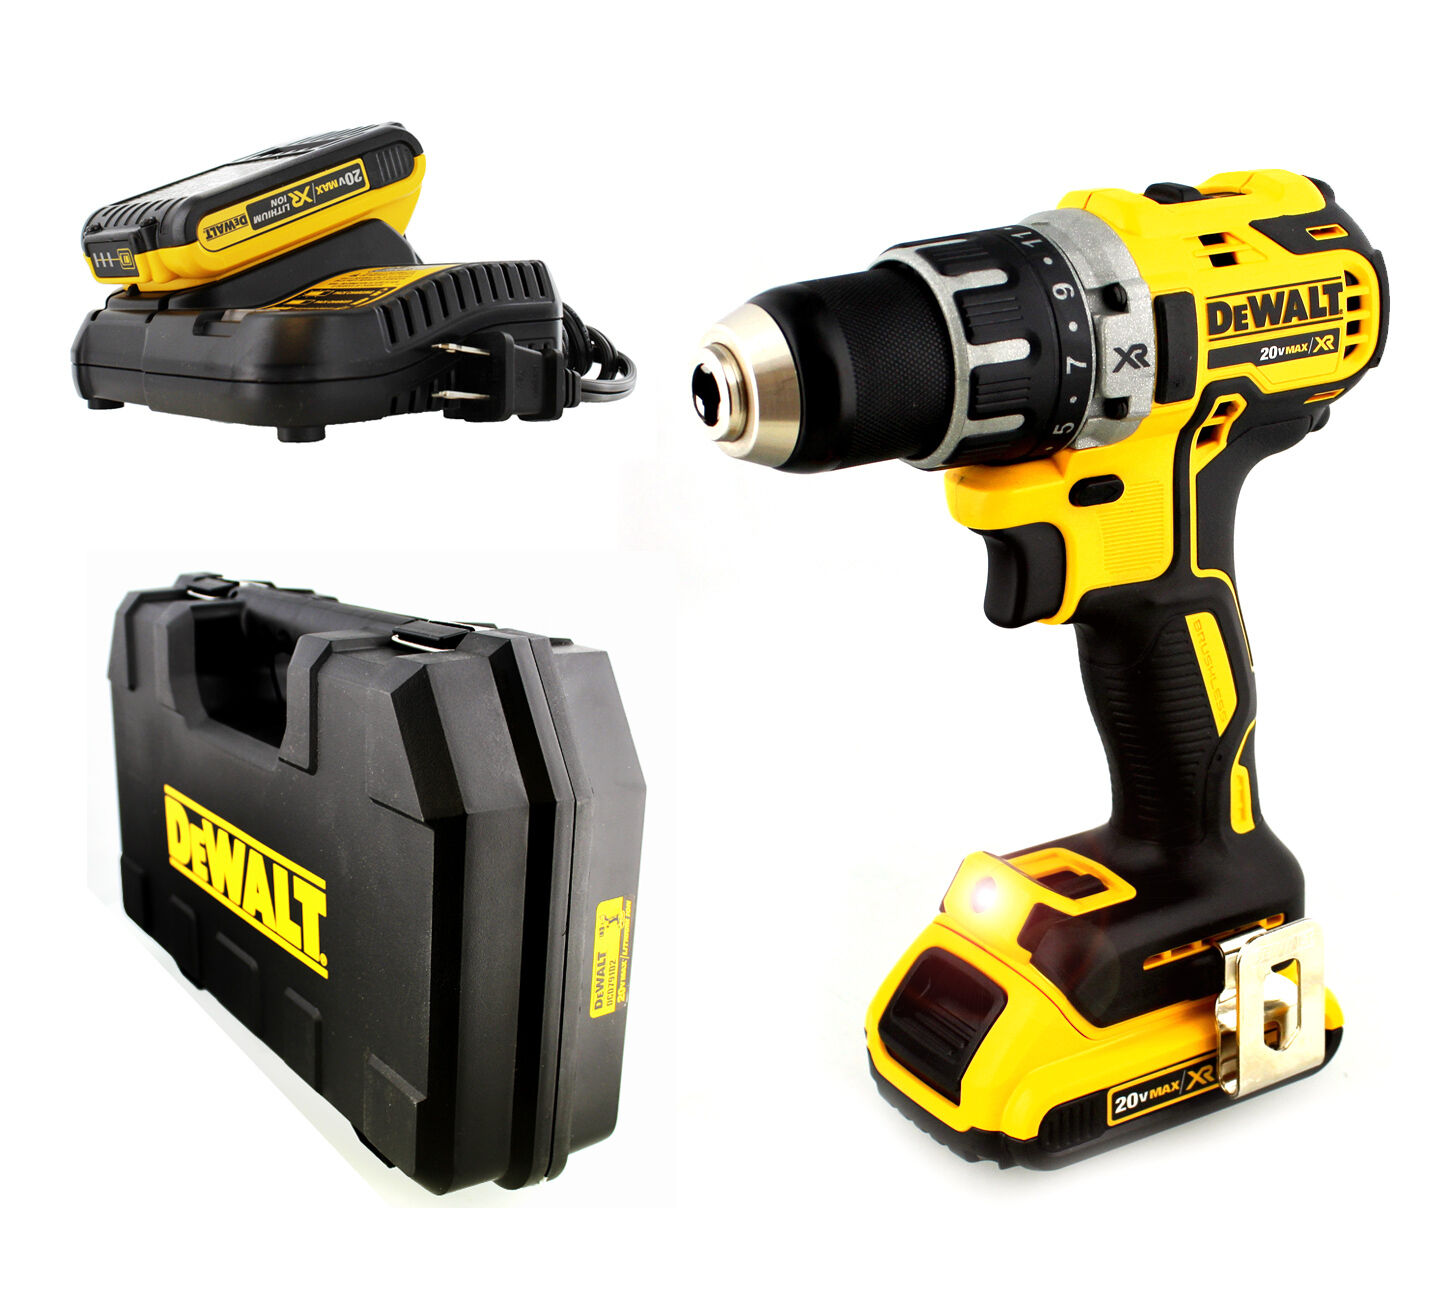 Dewalt dcd791d2 brushless compact drill driver kit 20v for Dewalt 20v brushless motor